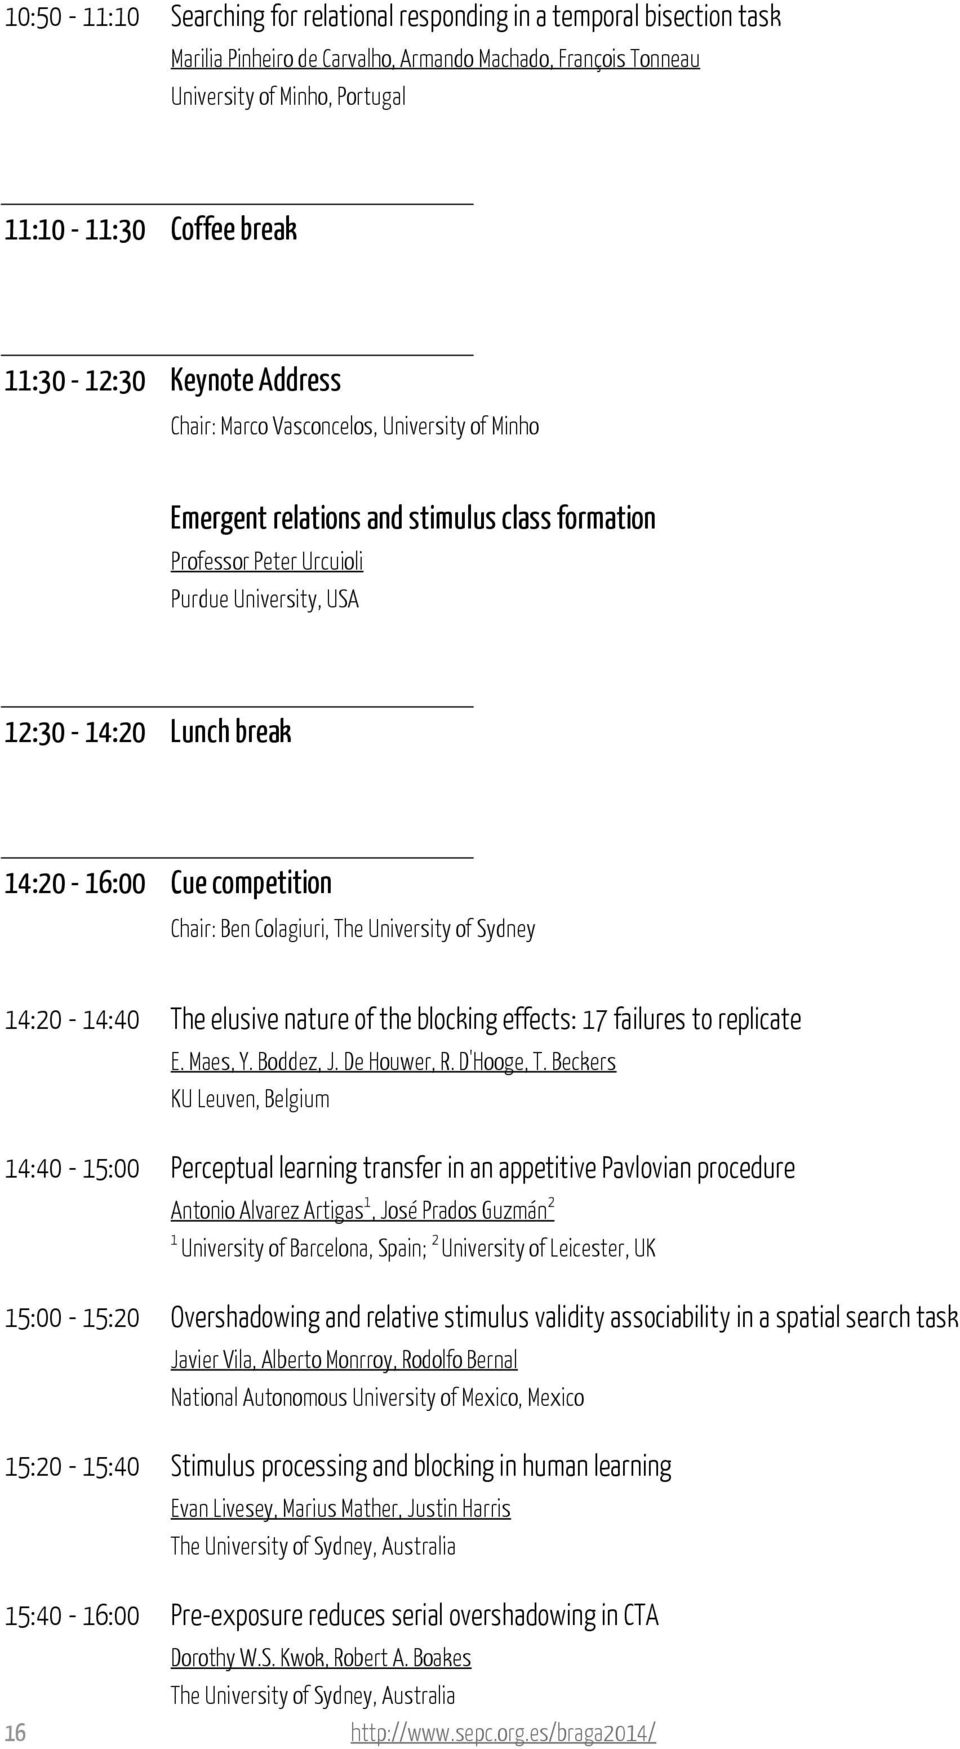 14:20-16:00 Cue competition Chair: Ben Colagiuri, The University of Sydney 14:20-14:40 The elusive nature of the blocking effects: 17 failures to replicate E. Maes, Y. Boddez, J. De Houwer, R.